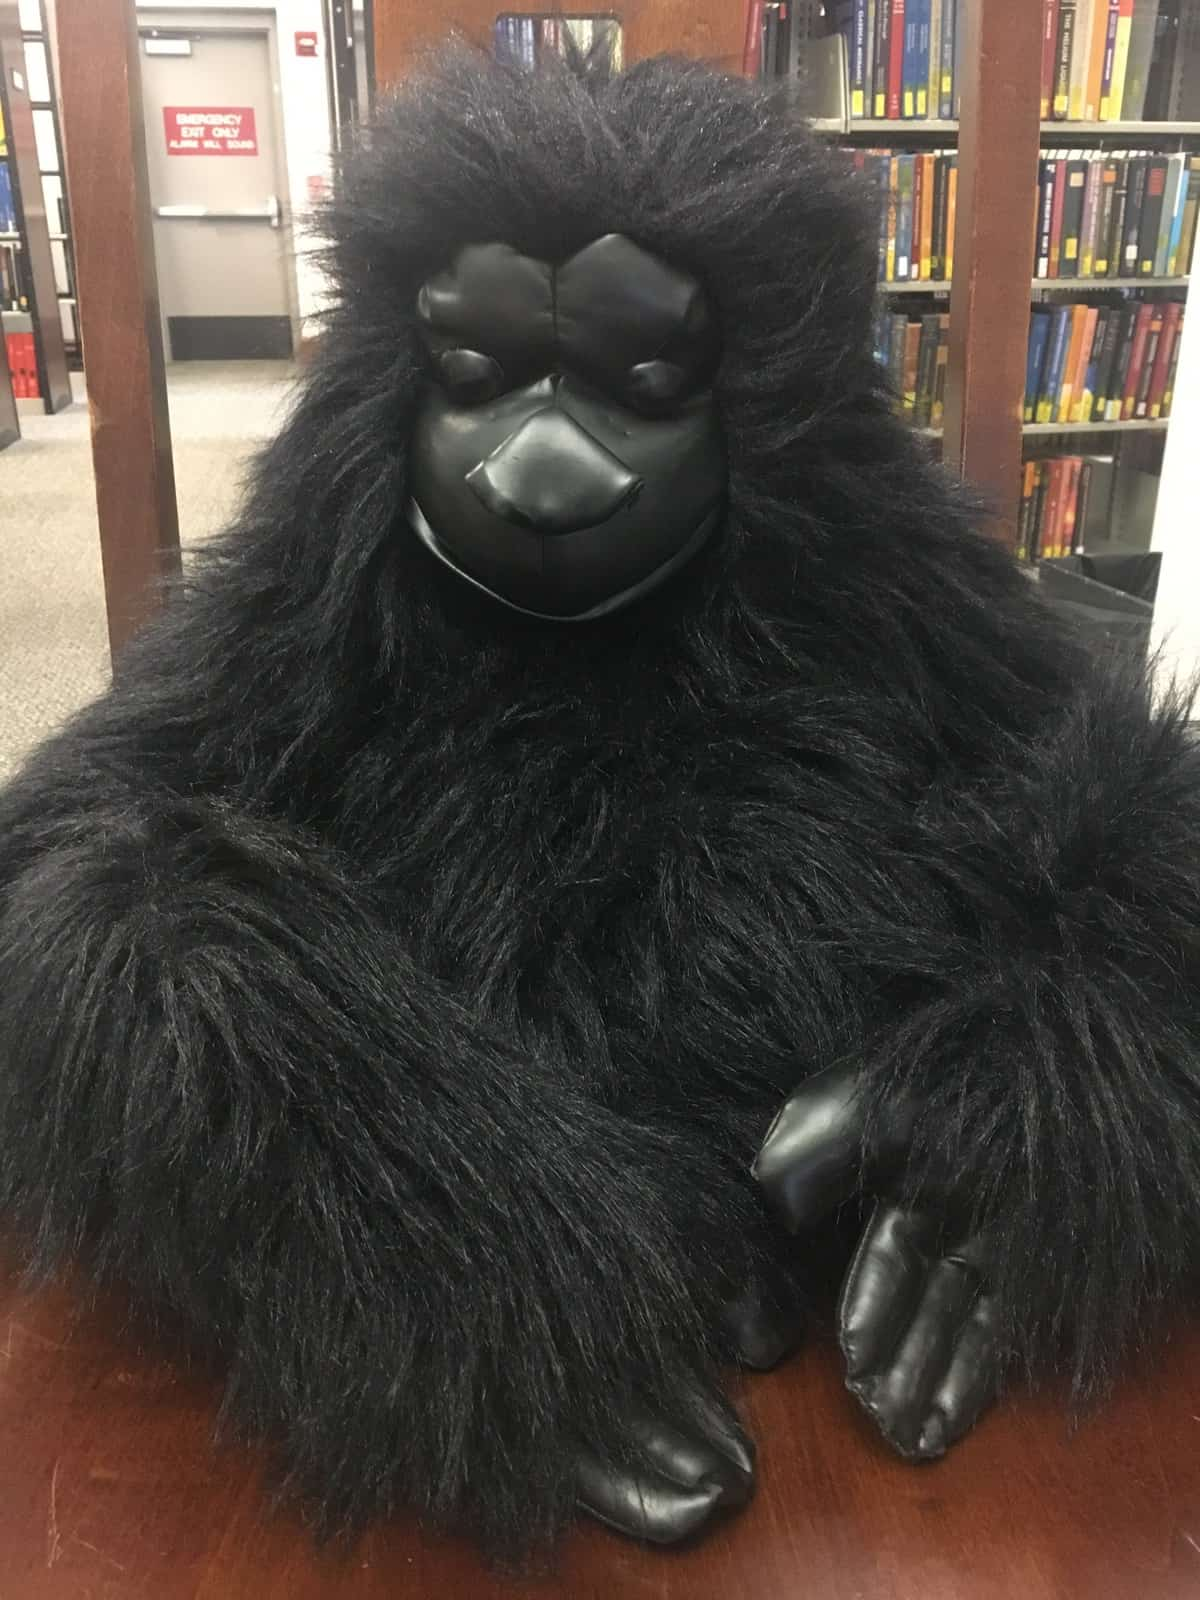 Chauncey, the Sciences Library mascot